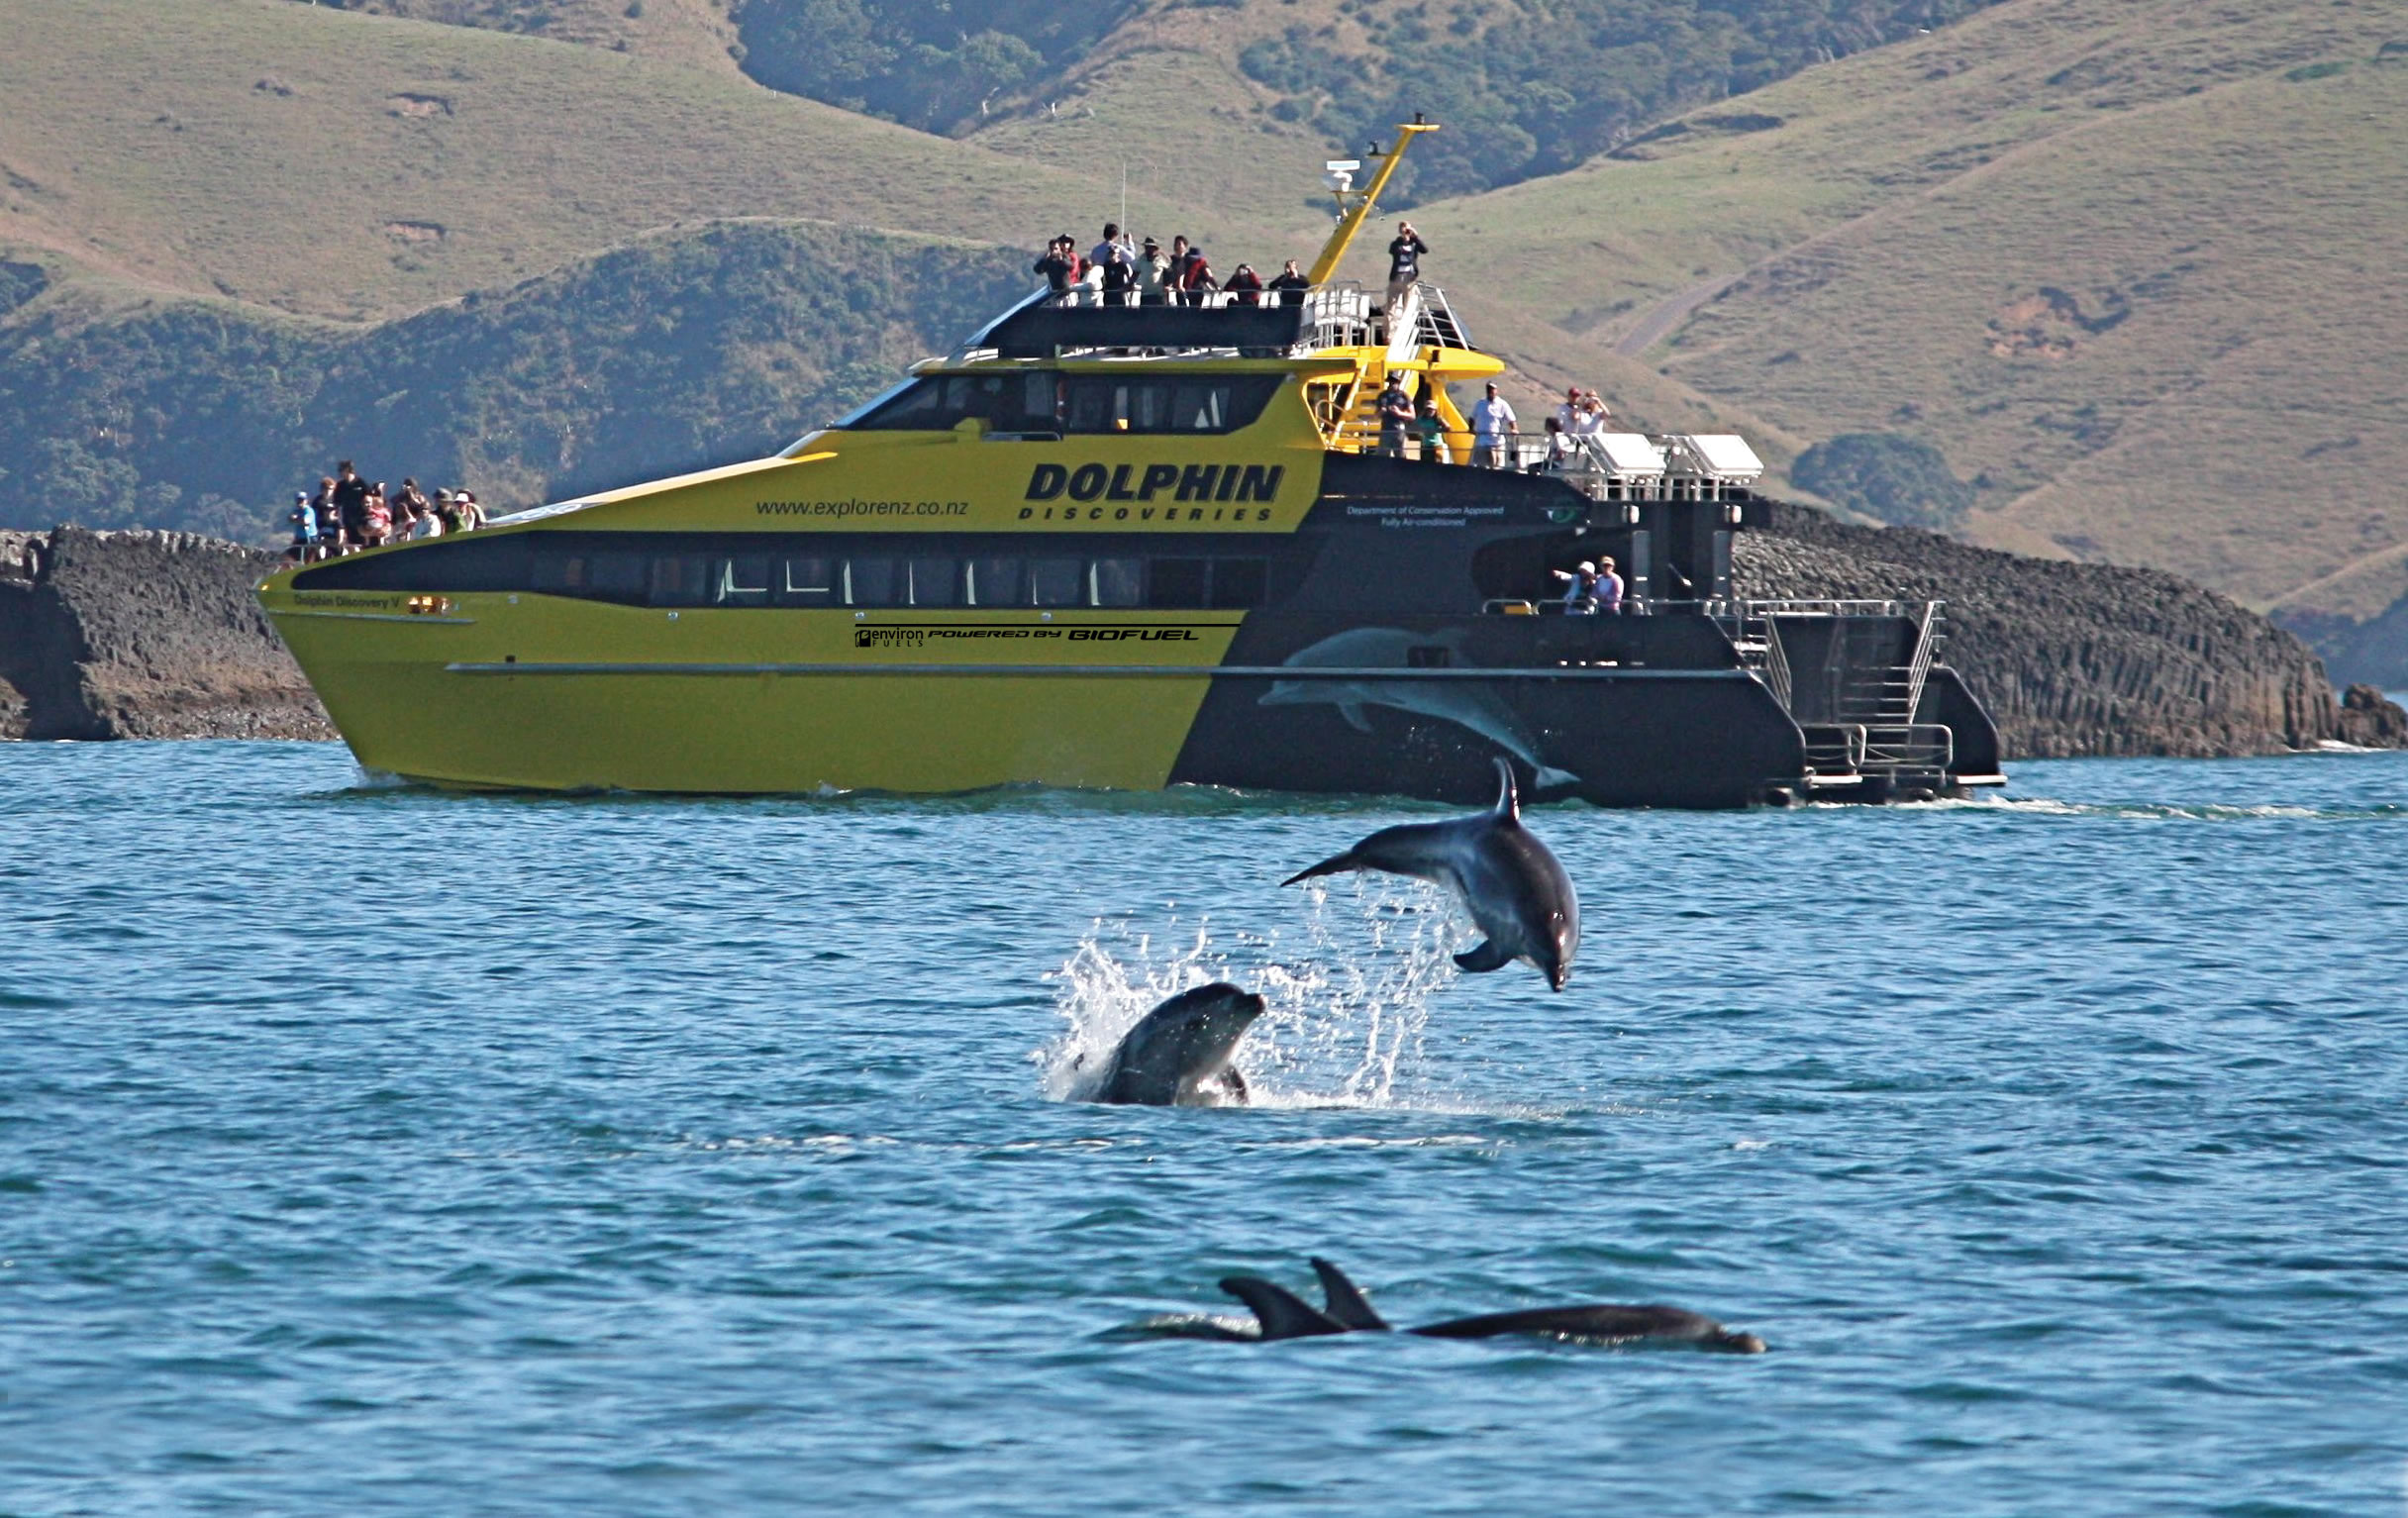 Discover-the-Bay-hole-in-the-rock-cruise.jpg